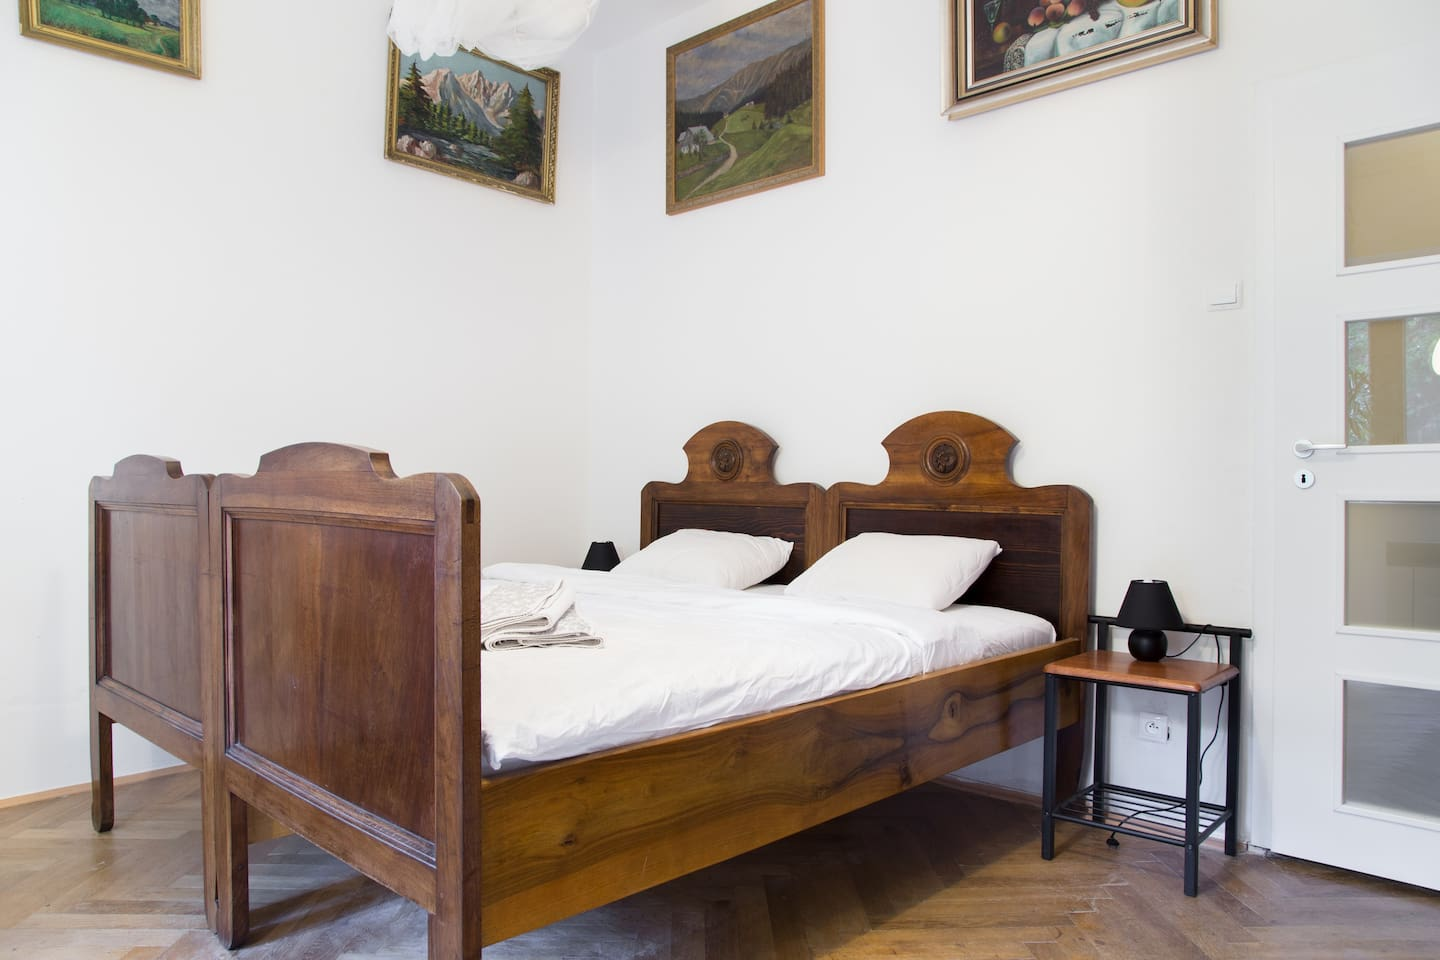 Antique bed that is more than a century old